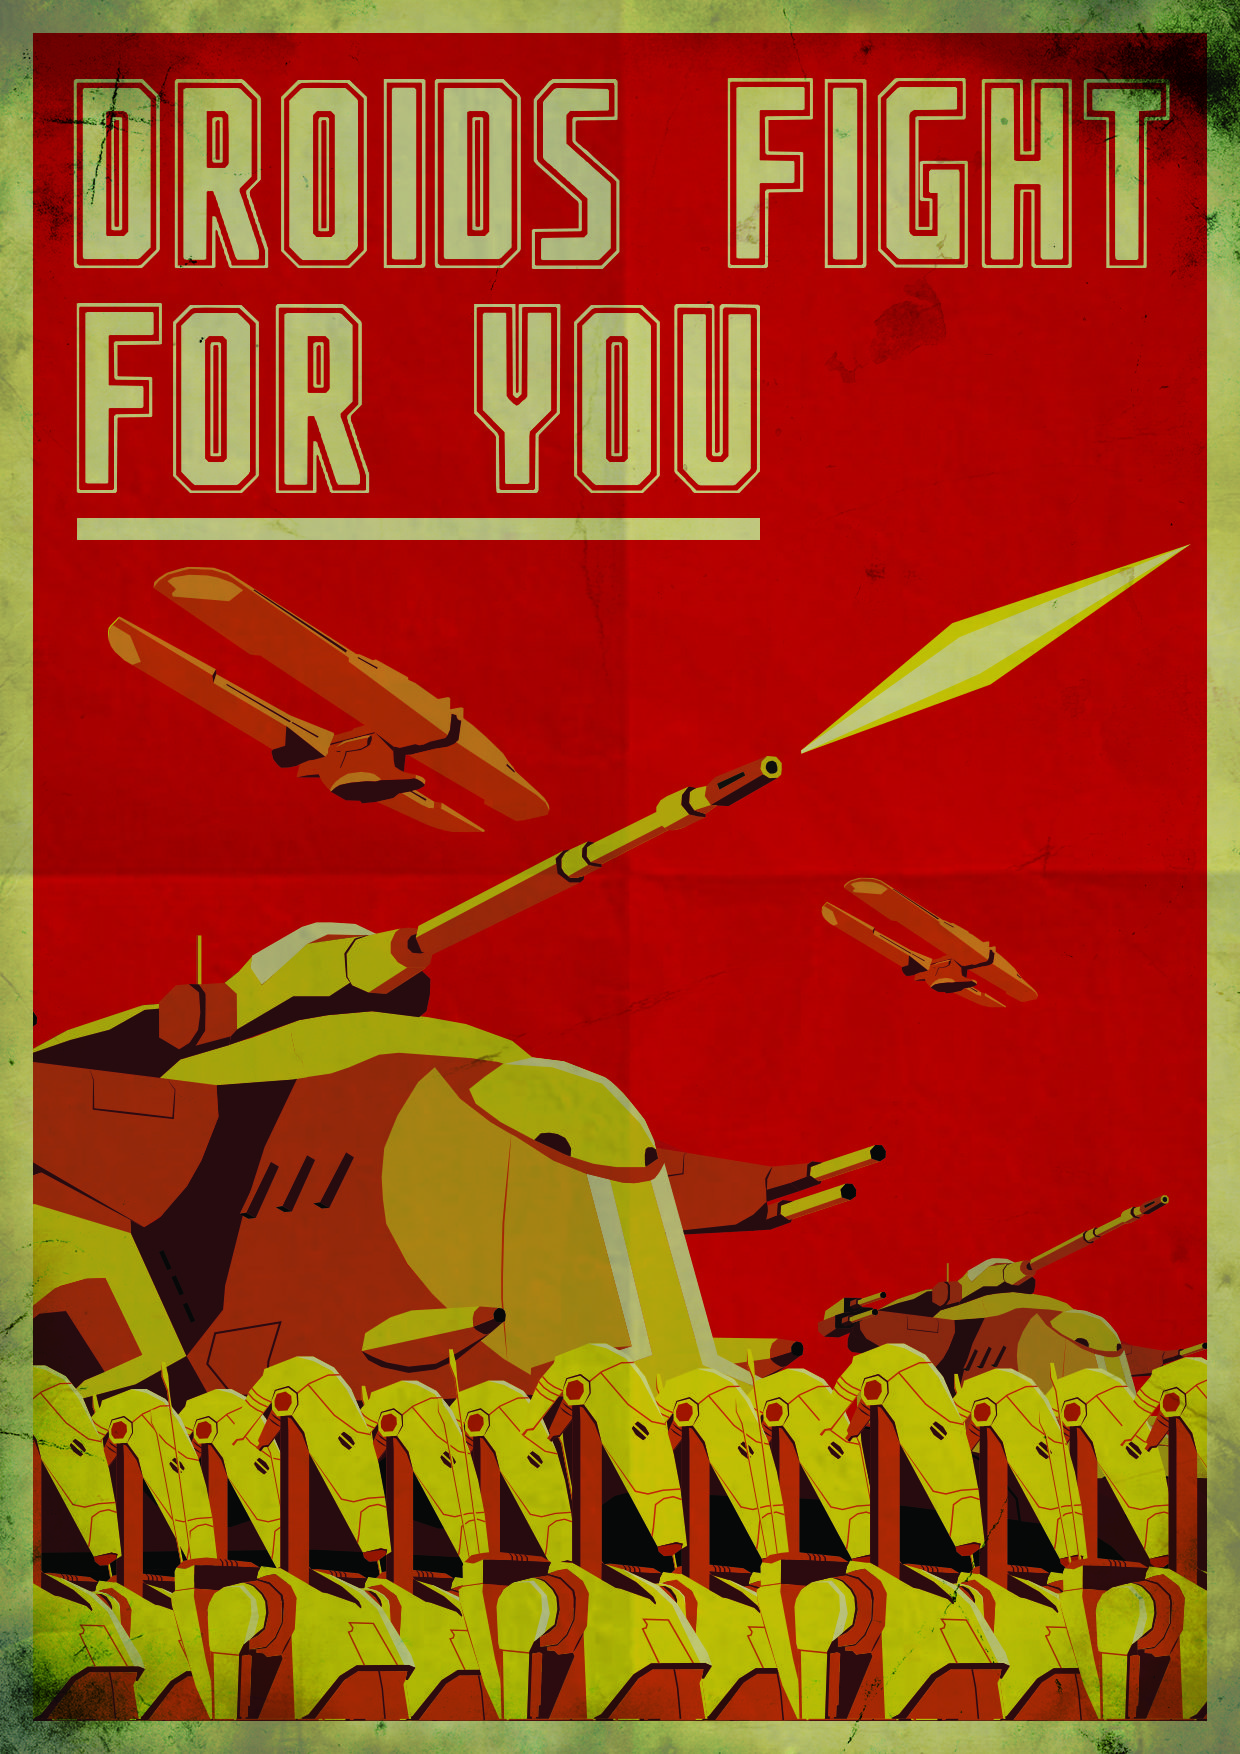 droids fighting for you.jpg